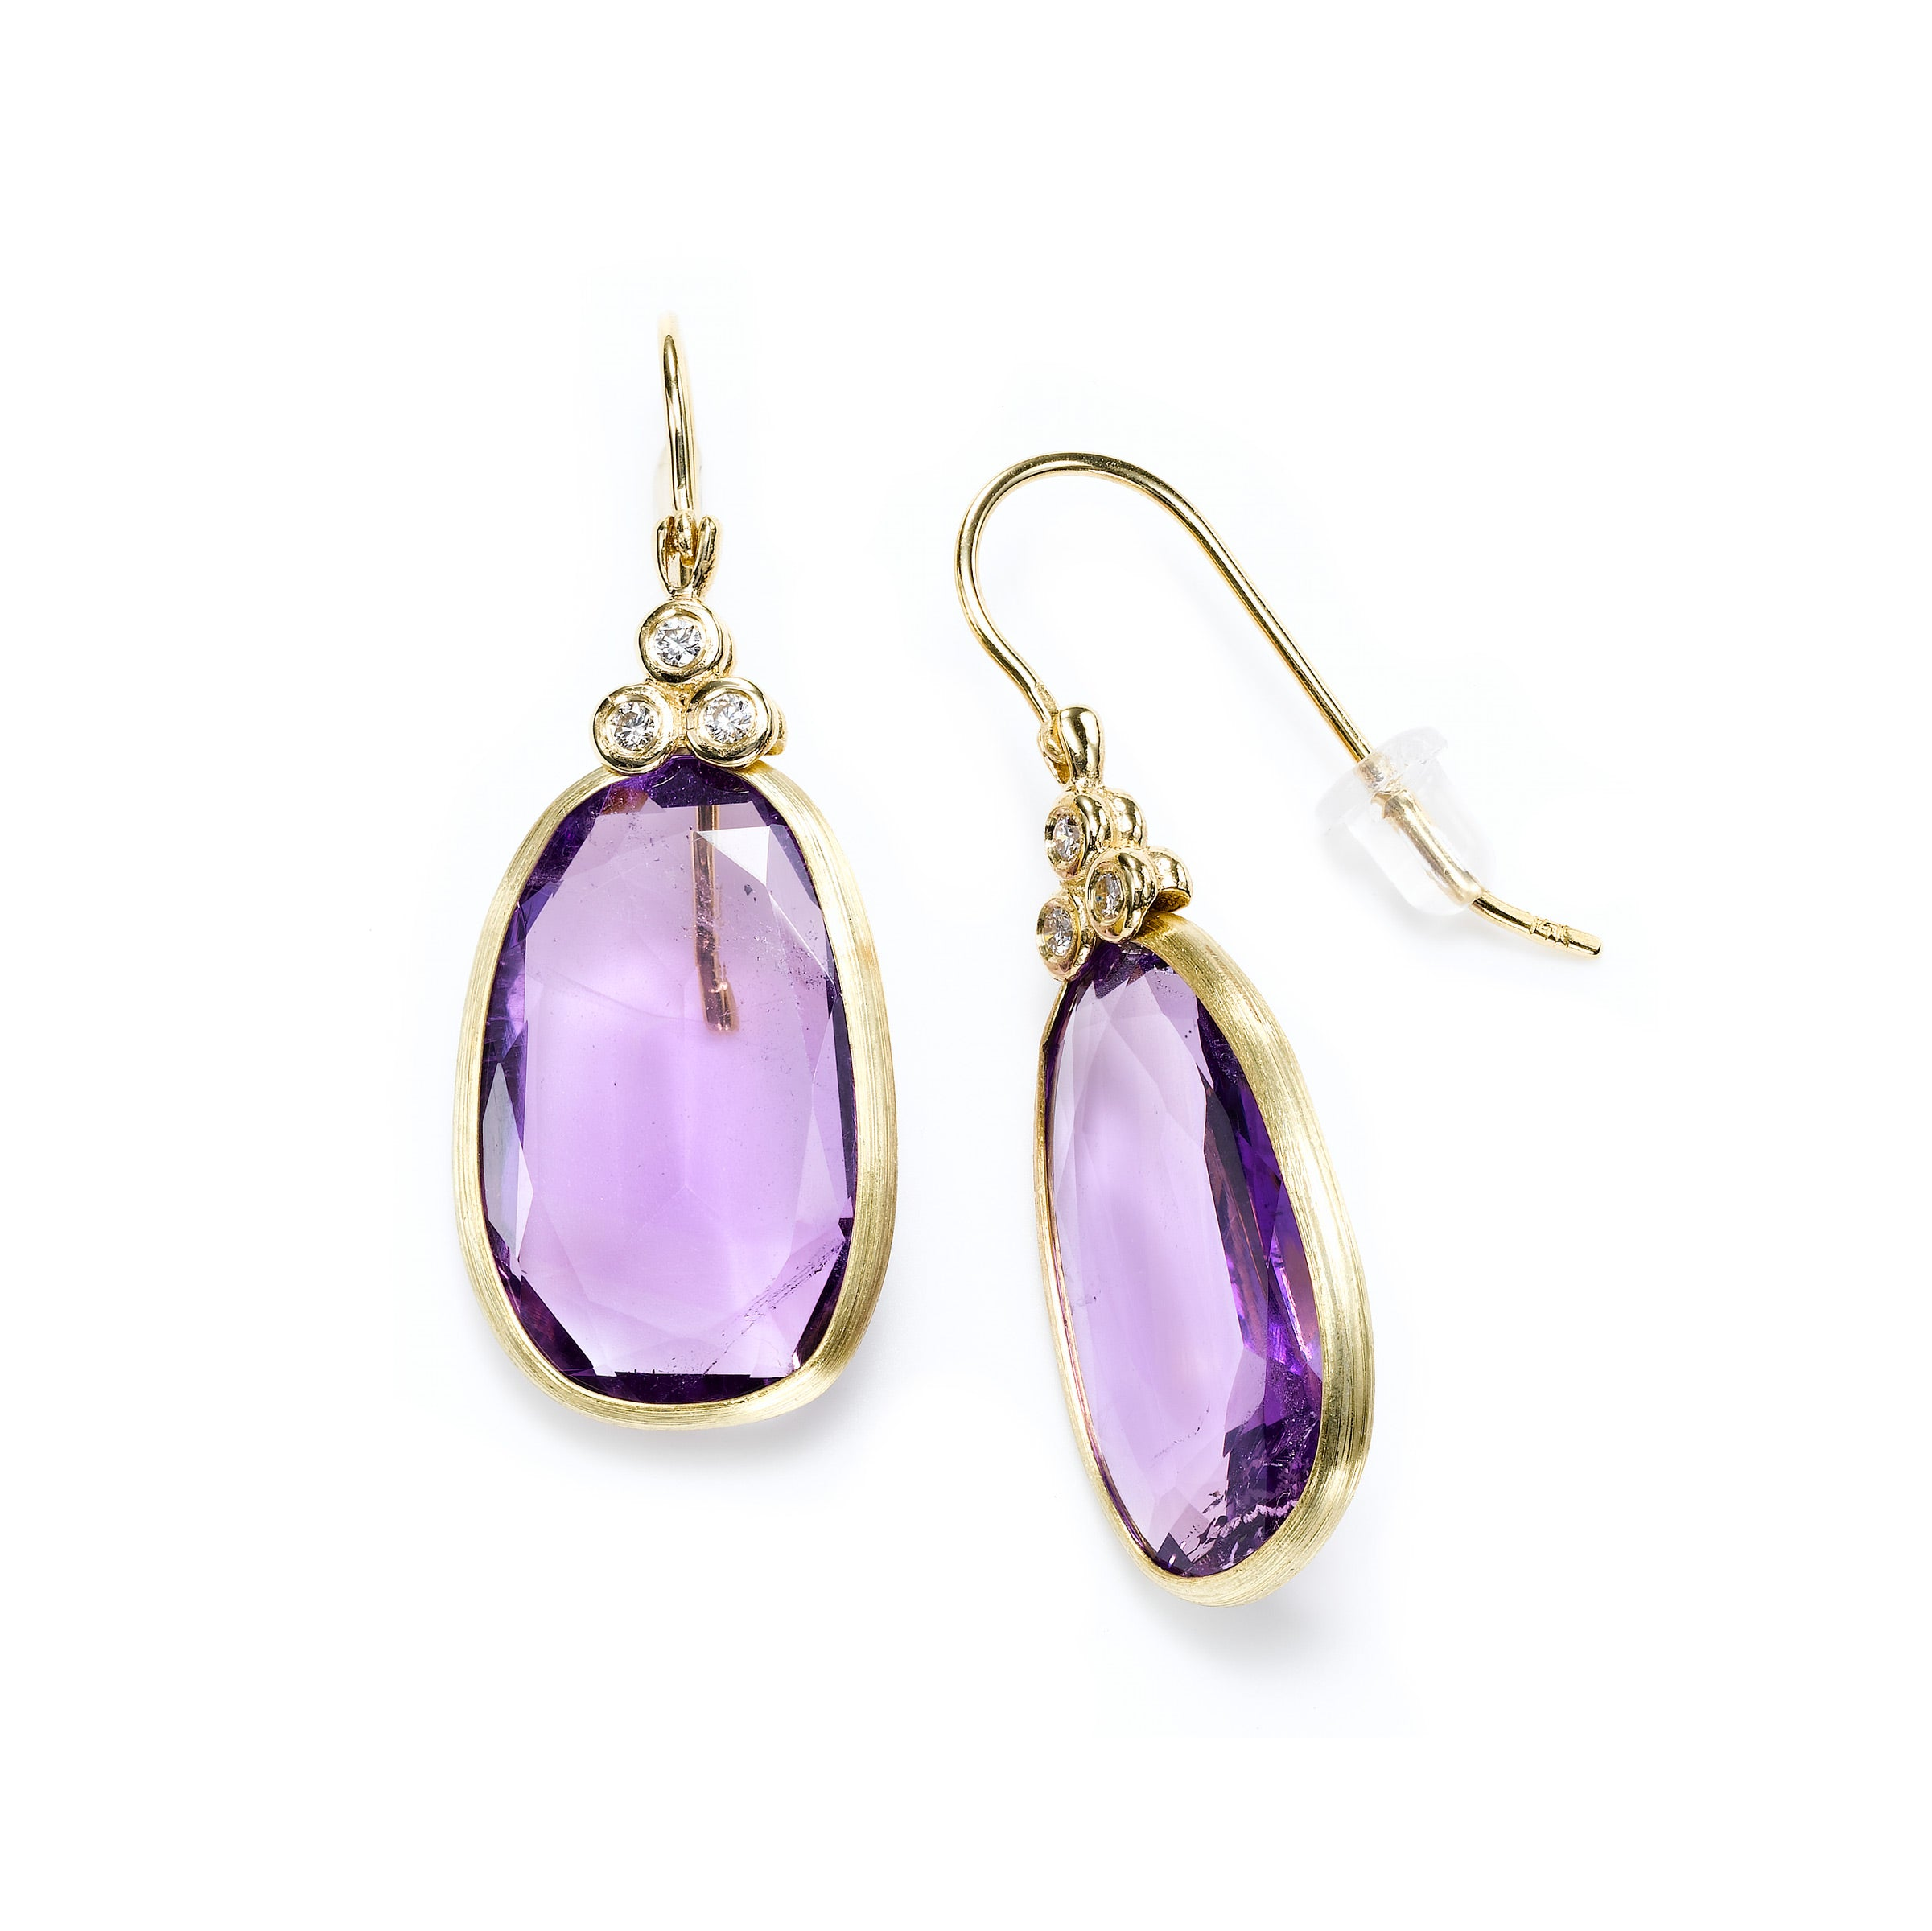 Oval Amethyst Dangle Earrings with Diamond Accent, 14K Yellow Gold